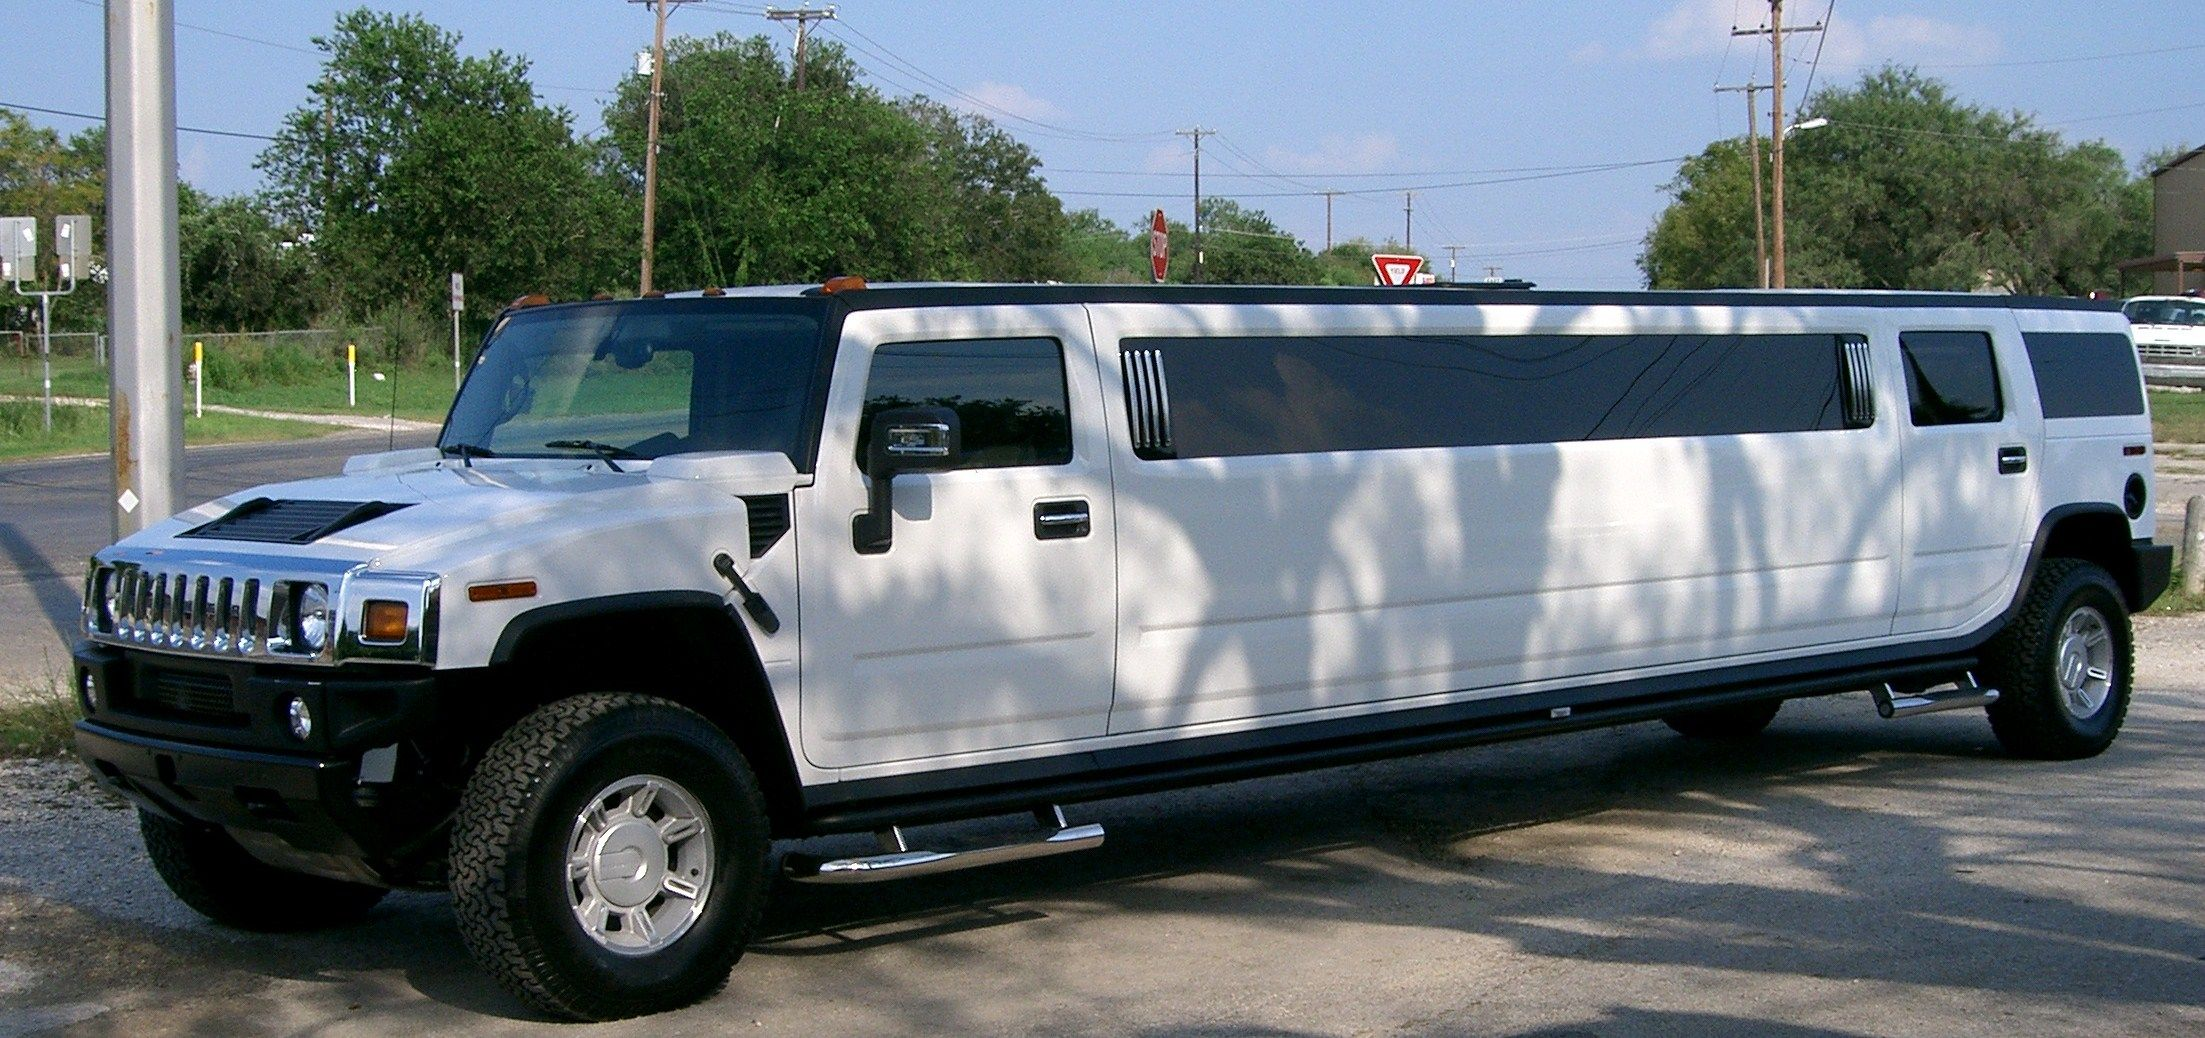 Hummer Limo I just found out this type of incredible ... | hummer limo las vegas